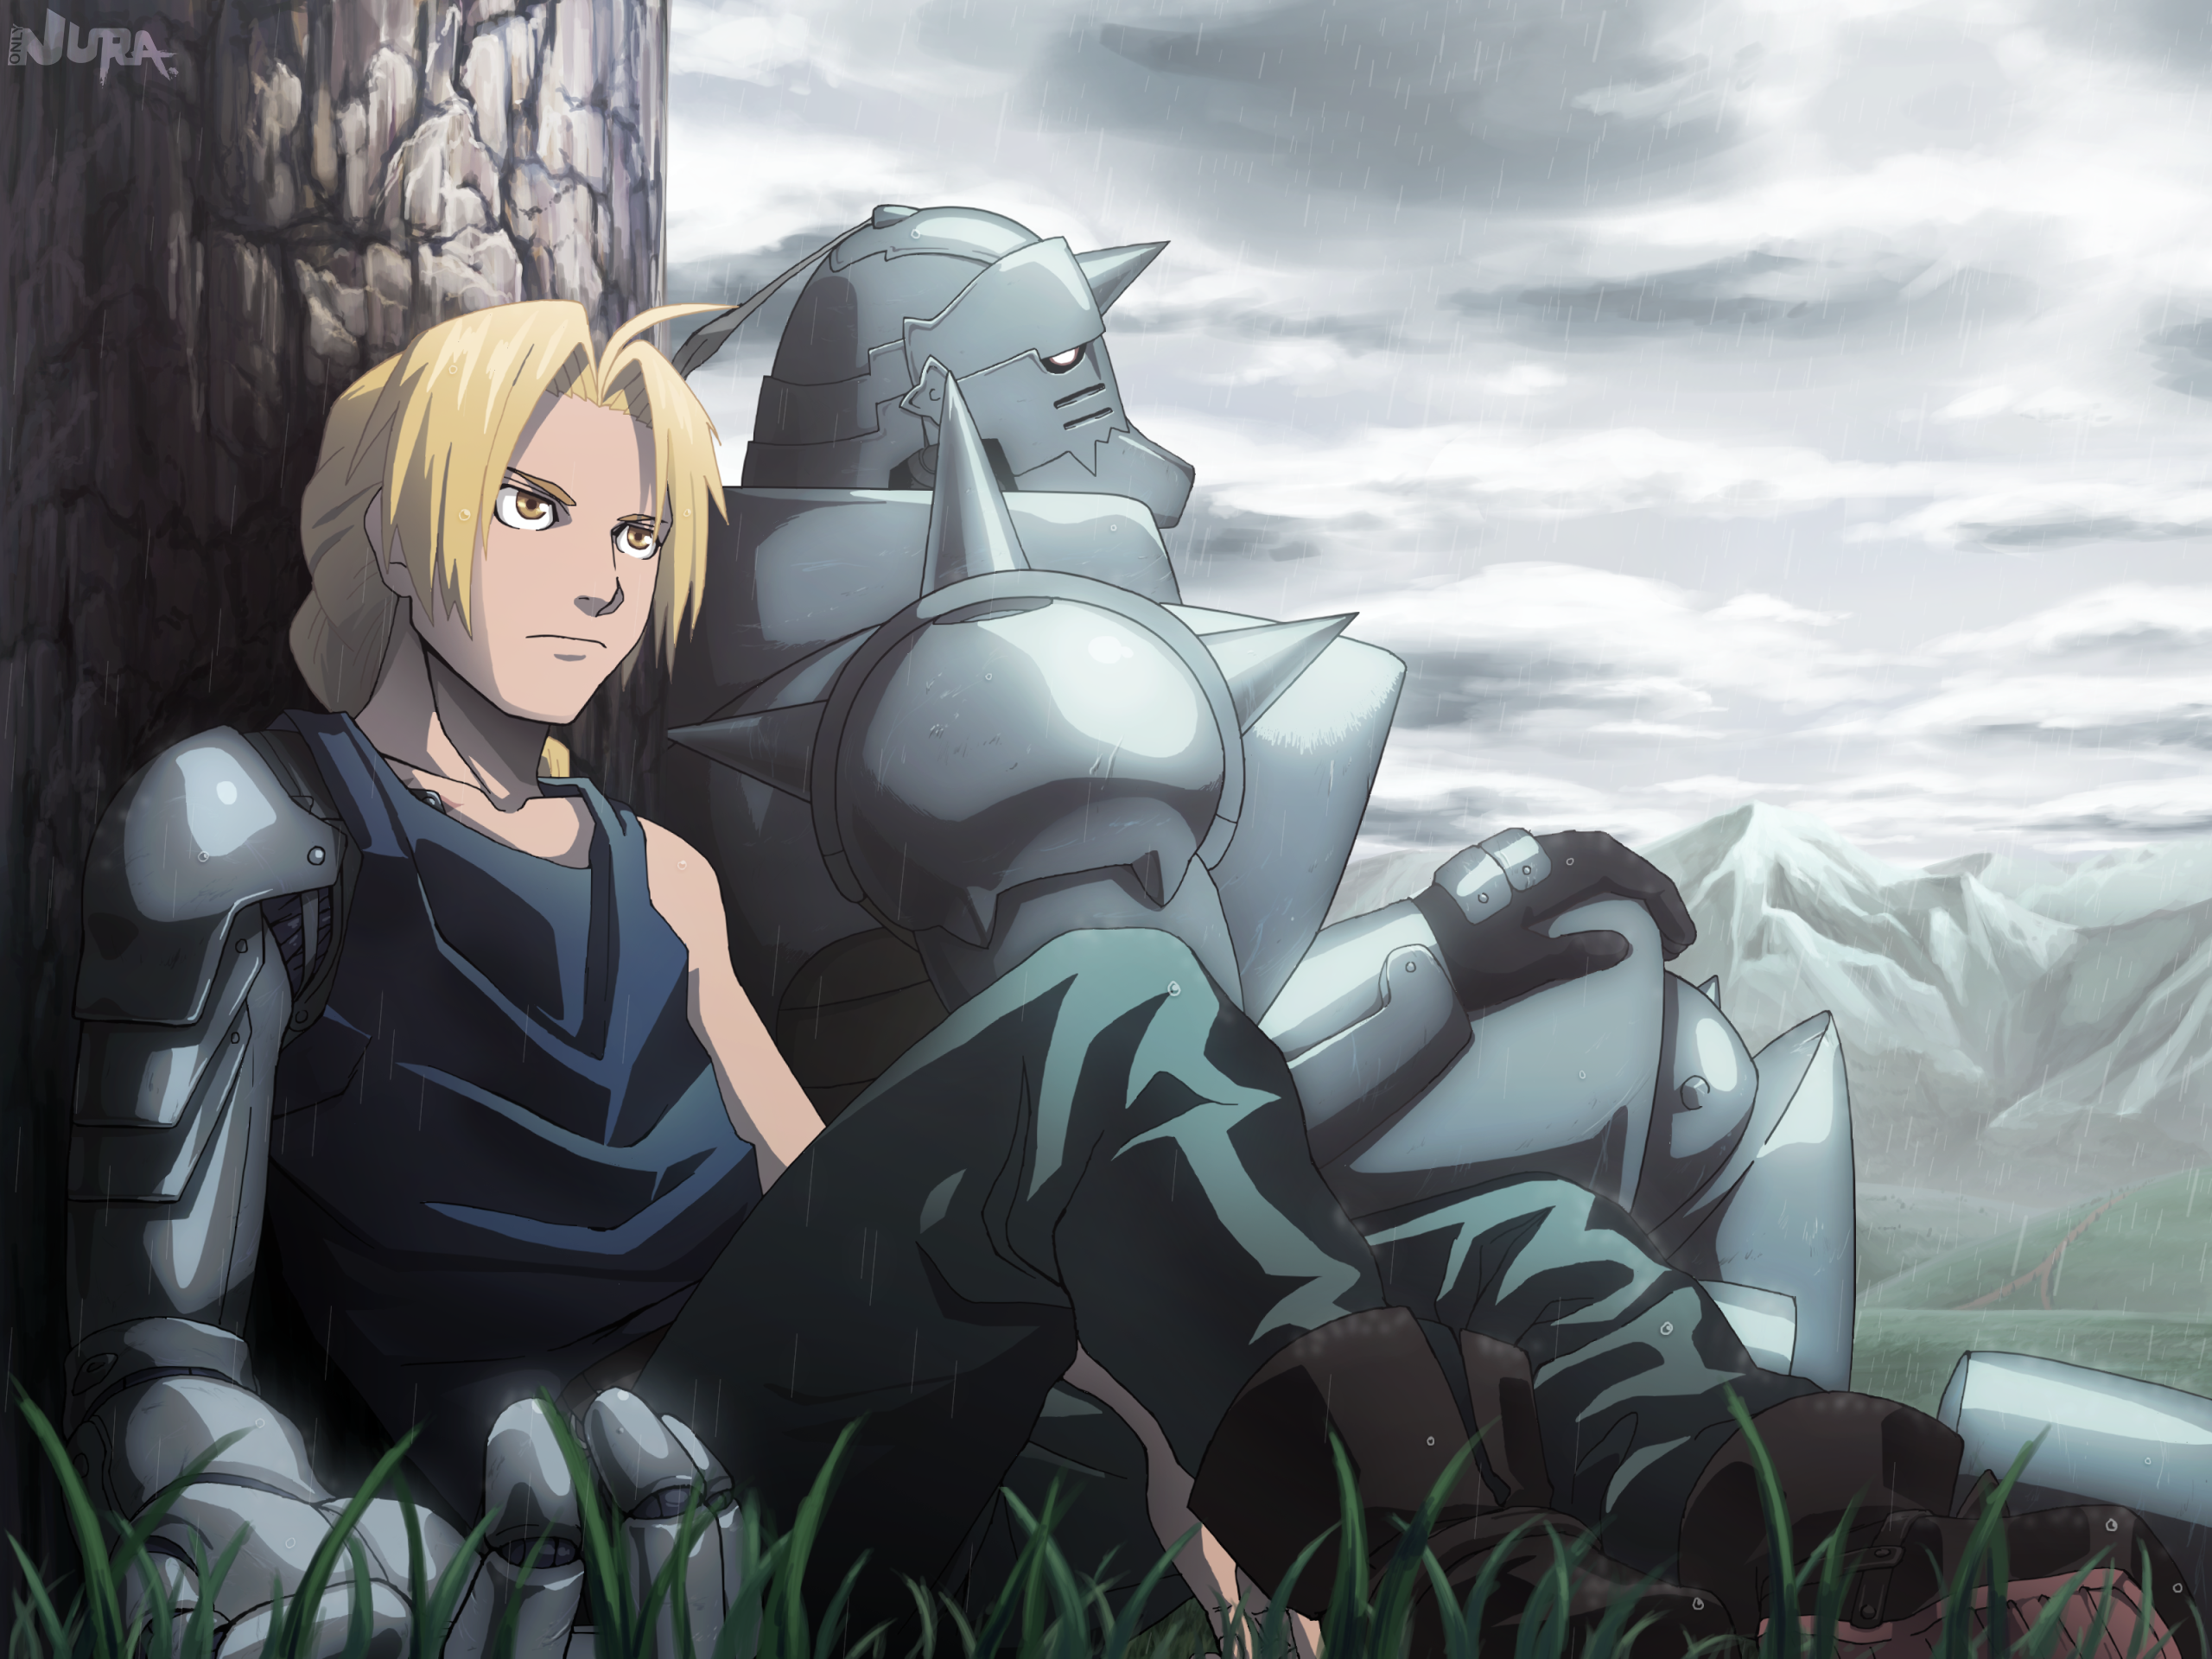 Fullmetal Alchemist Hd Wallpaper Background Image 2560x1920